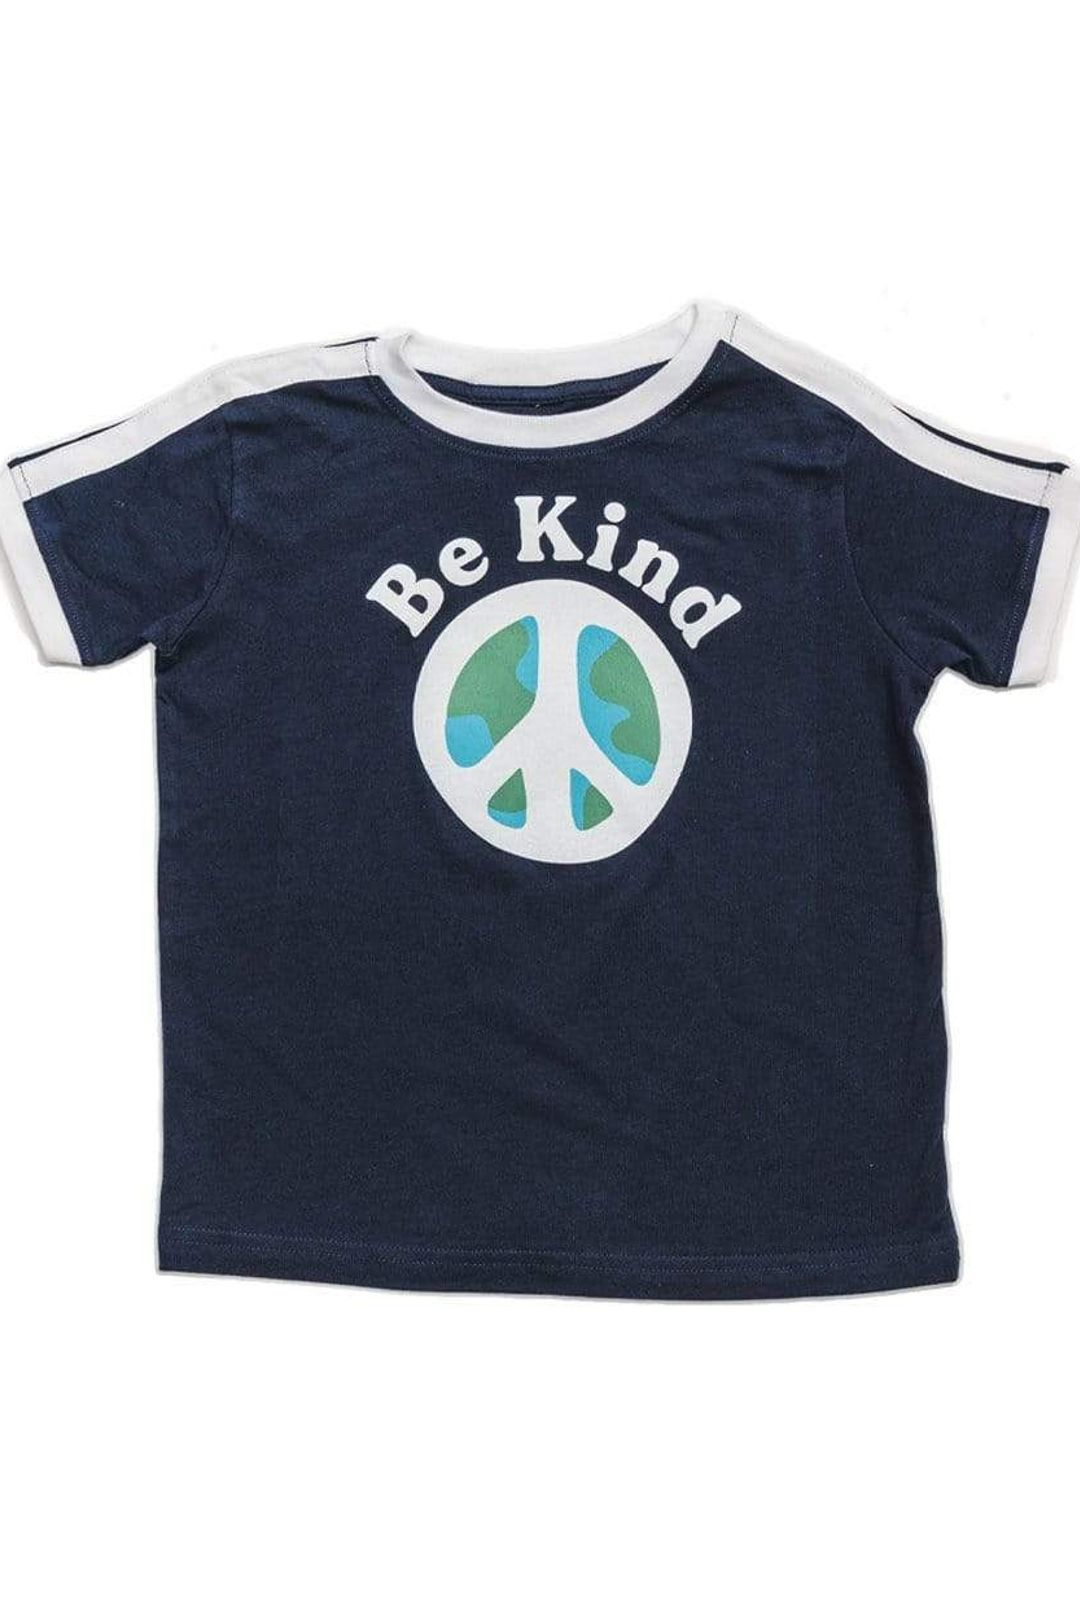 Be Kind Unisex Toddler Tee   Navy